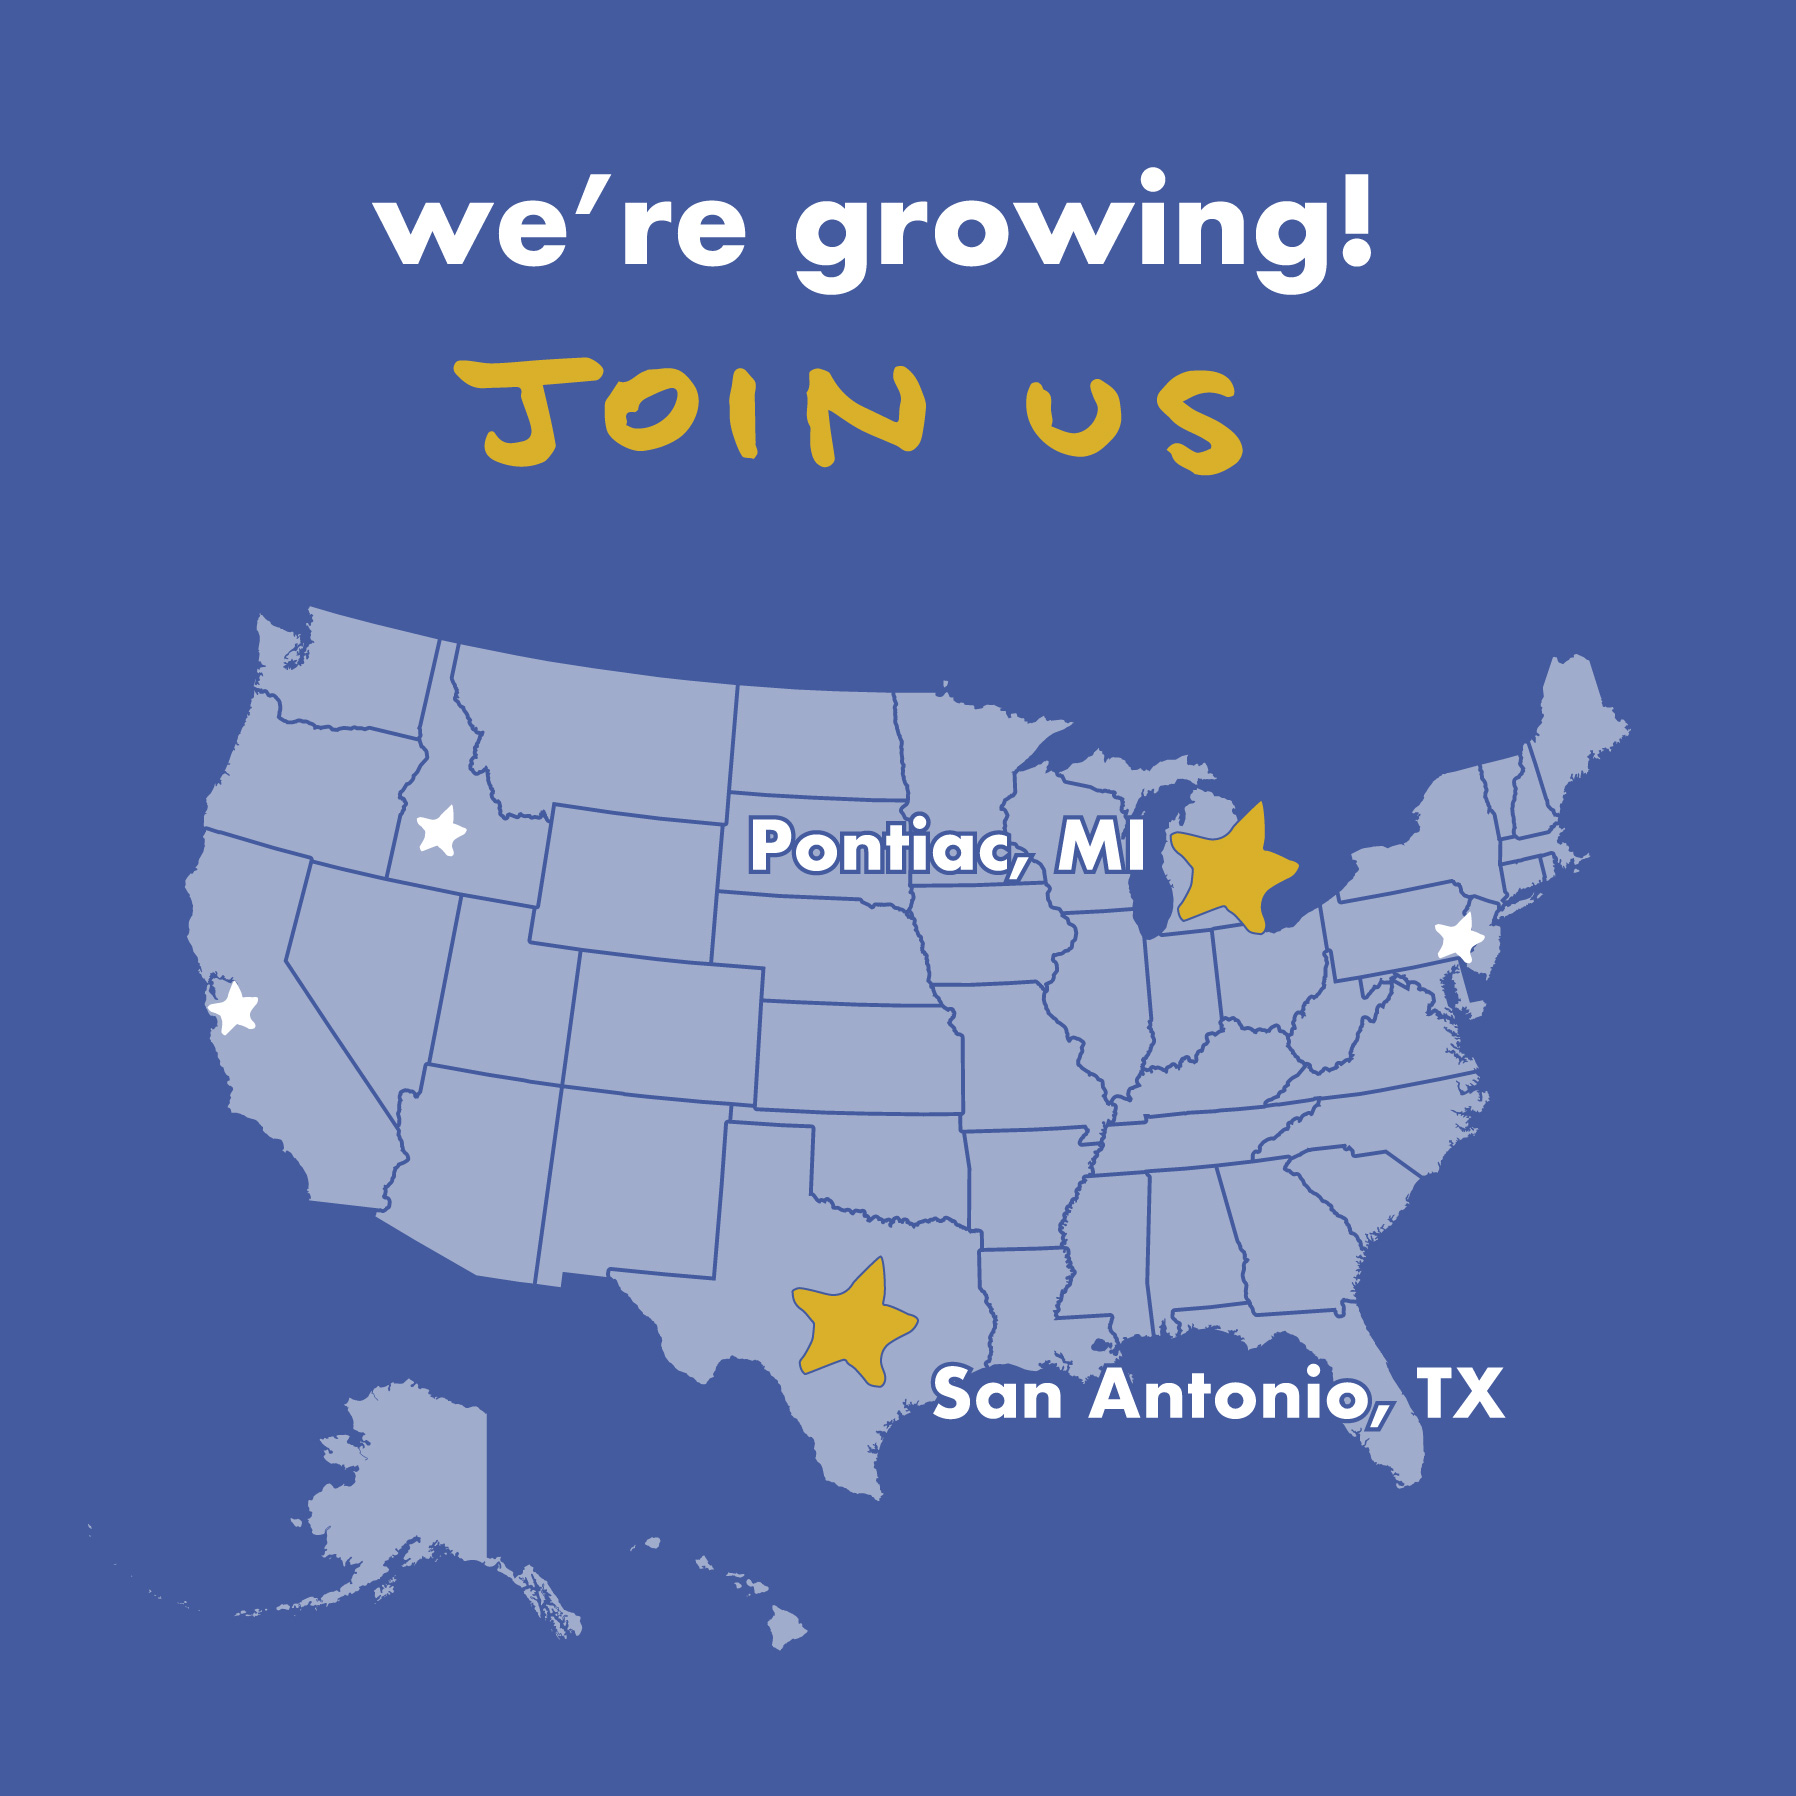 - Up Next: Serving San Antonio and PontiacWe are now accepting volunteer applications for our two newest cities - Pontiac MI, and San Antonio TX! Join us in our quest to build human centred streets - visit our website to learn more and apply for our volunteer training:www.nationalstreetservice.org/join